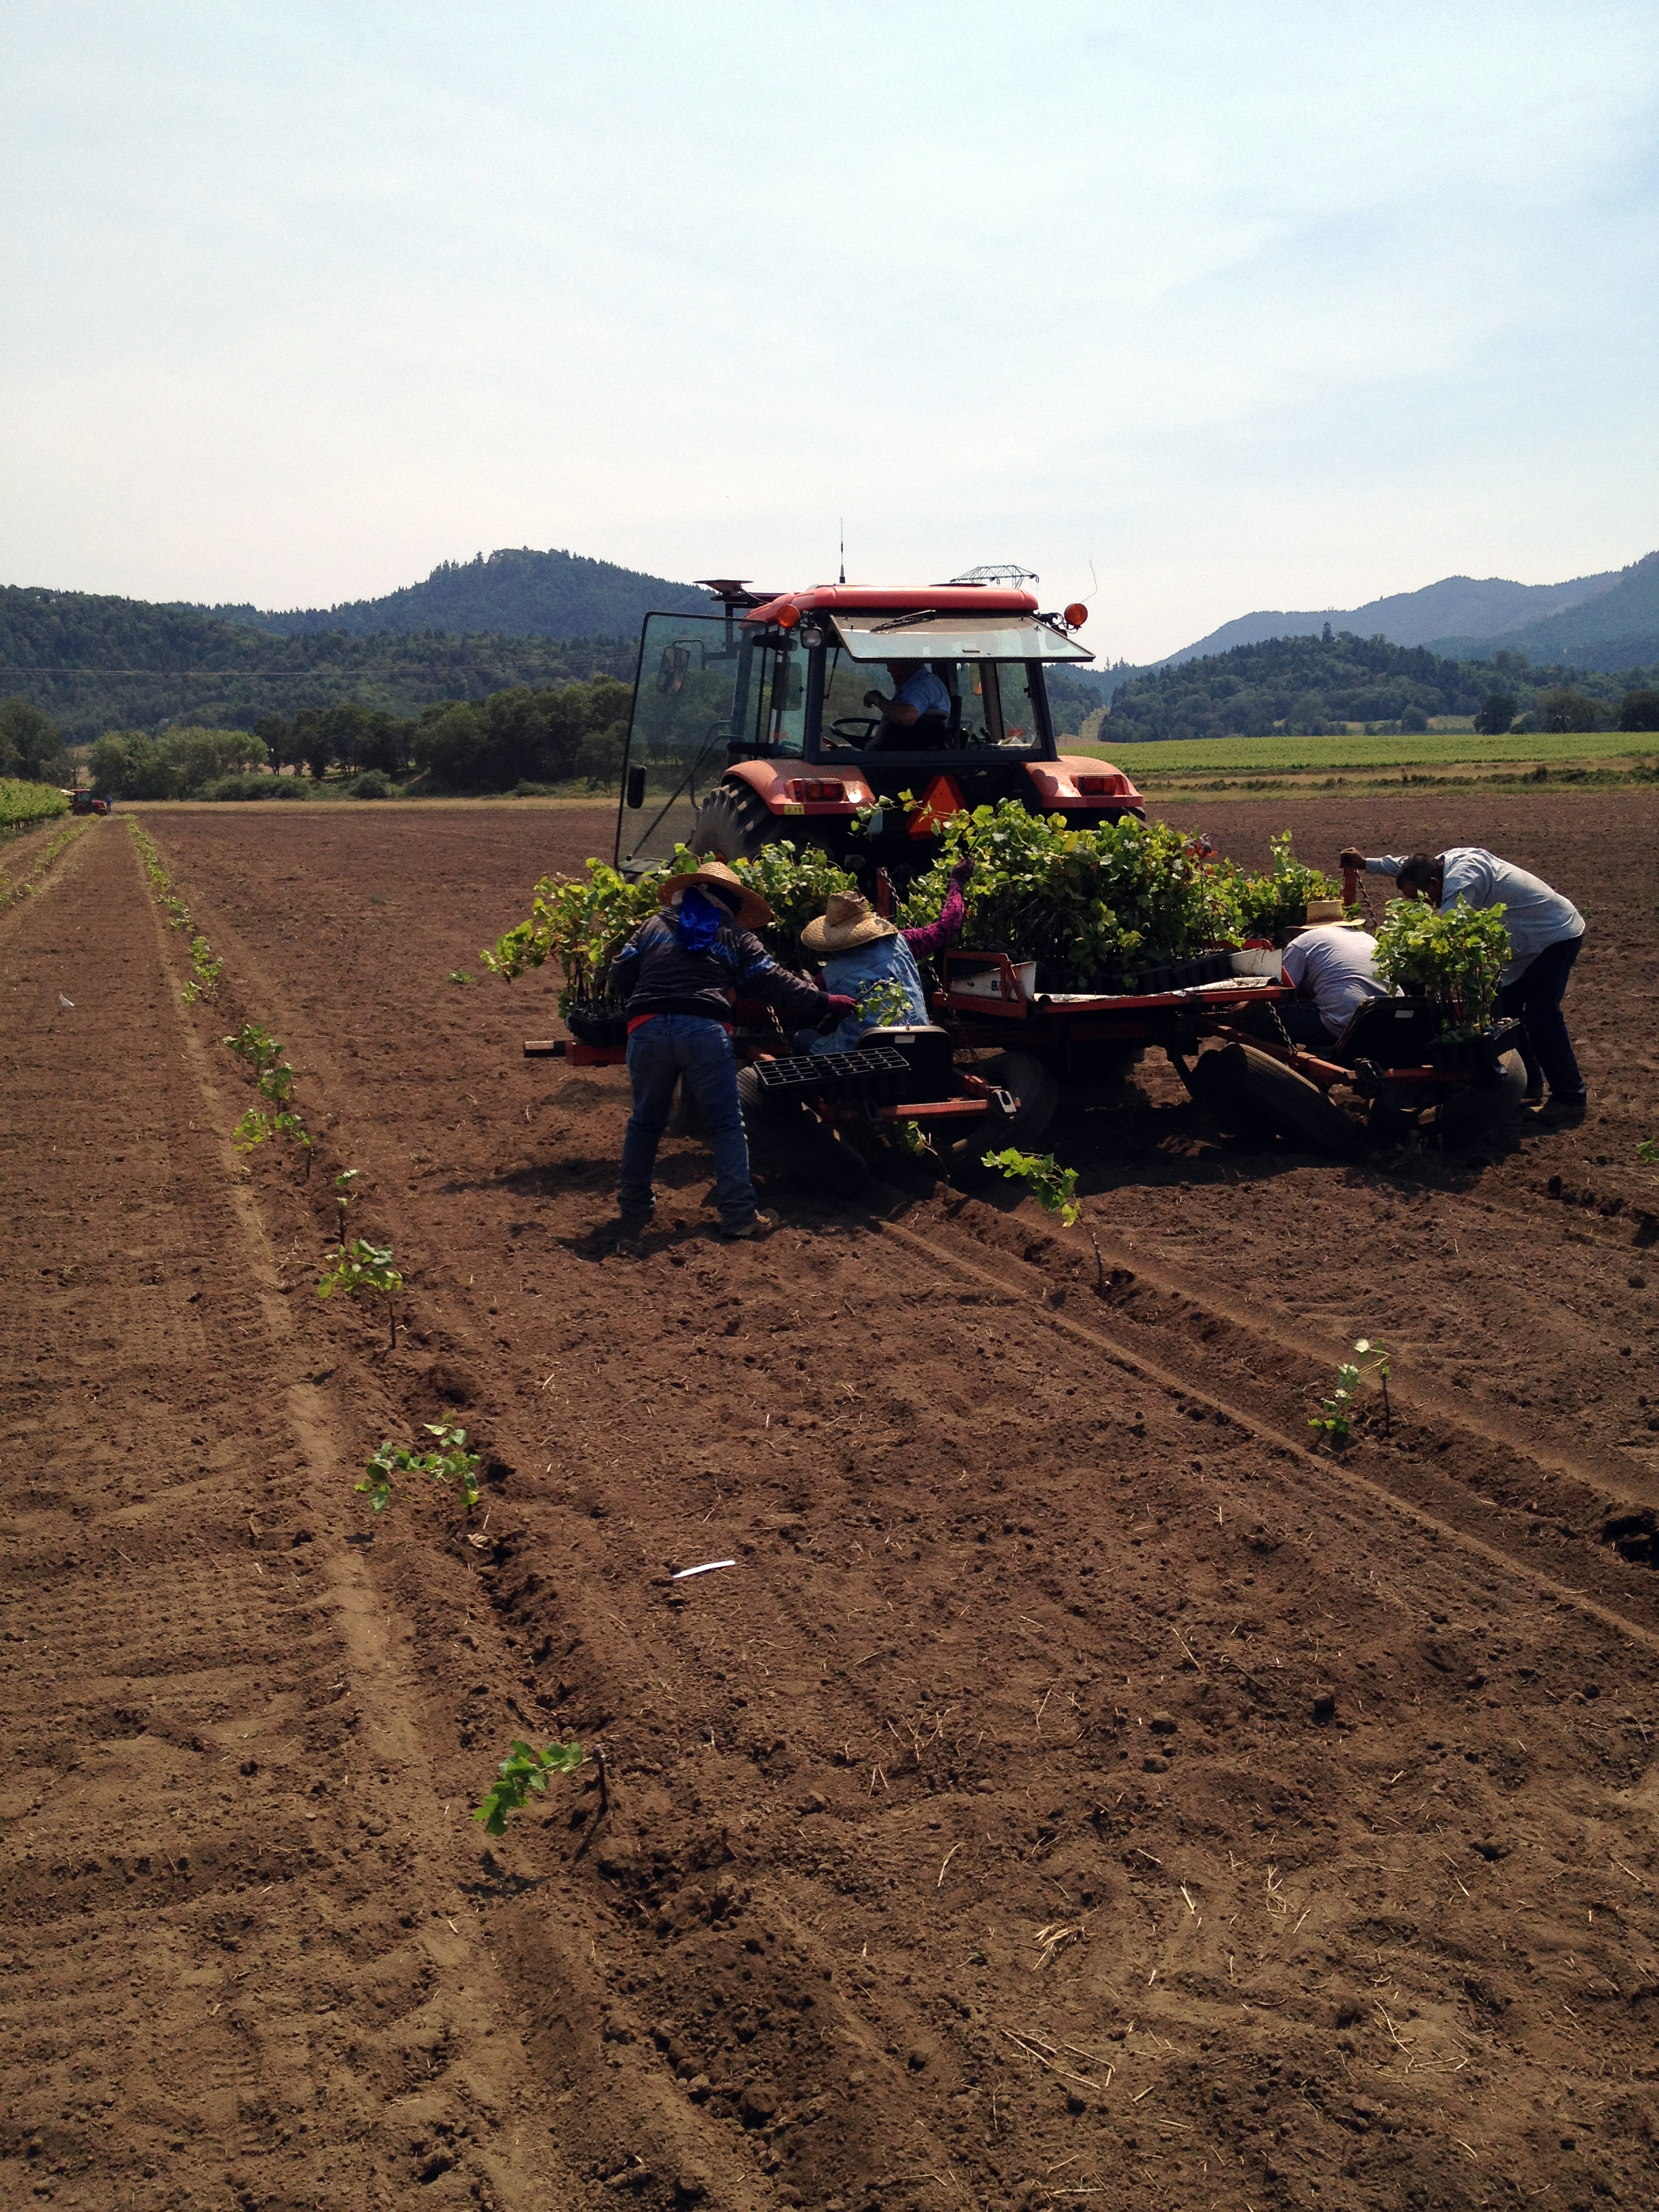 Duck Pond Cellars crew plants the last section of Coles Valley Vineyard in 2012. (Photo courtesy of Duck Pond Cellars).